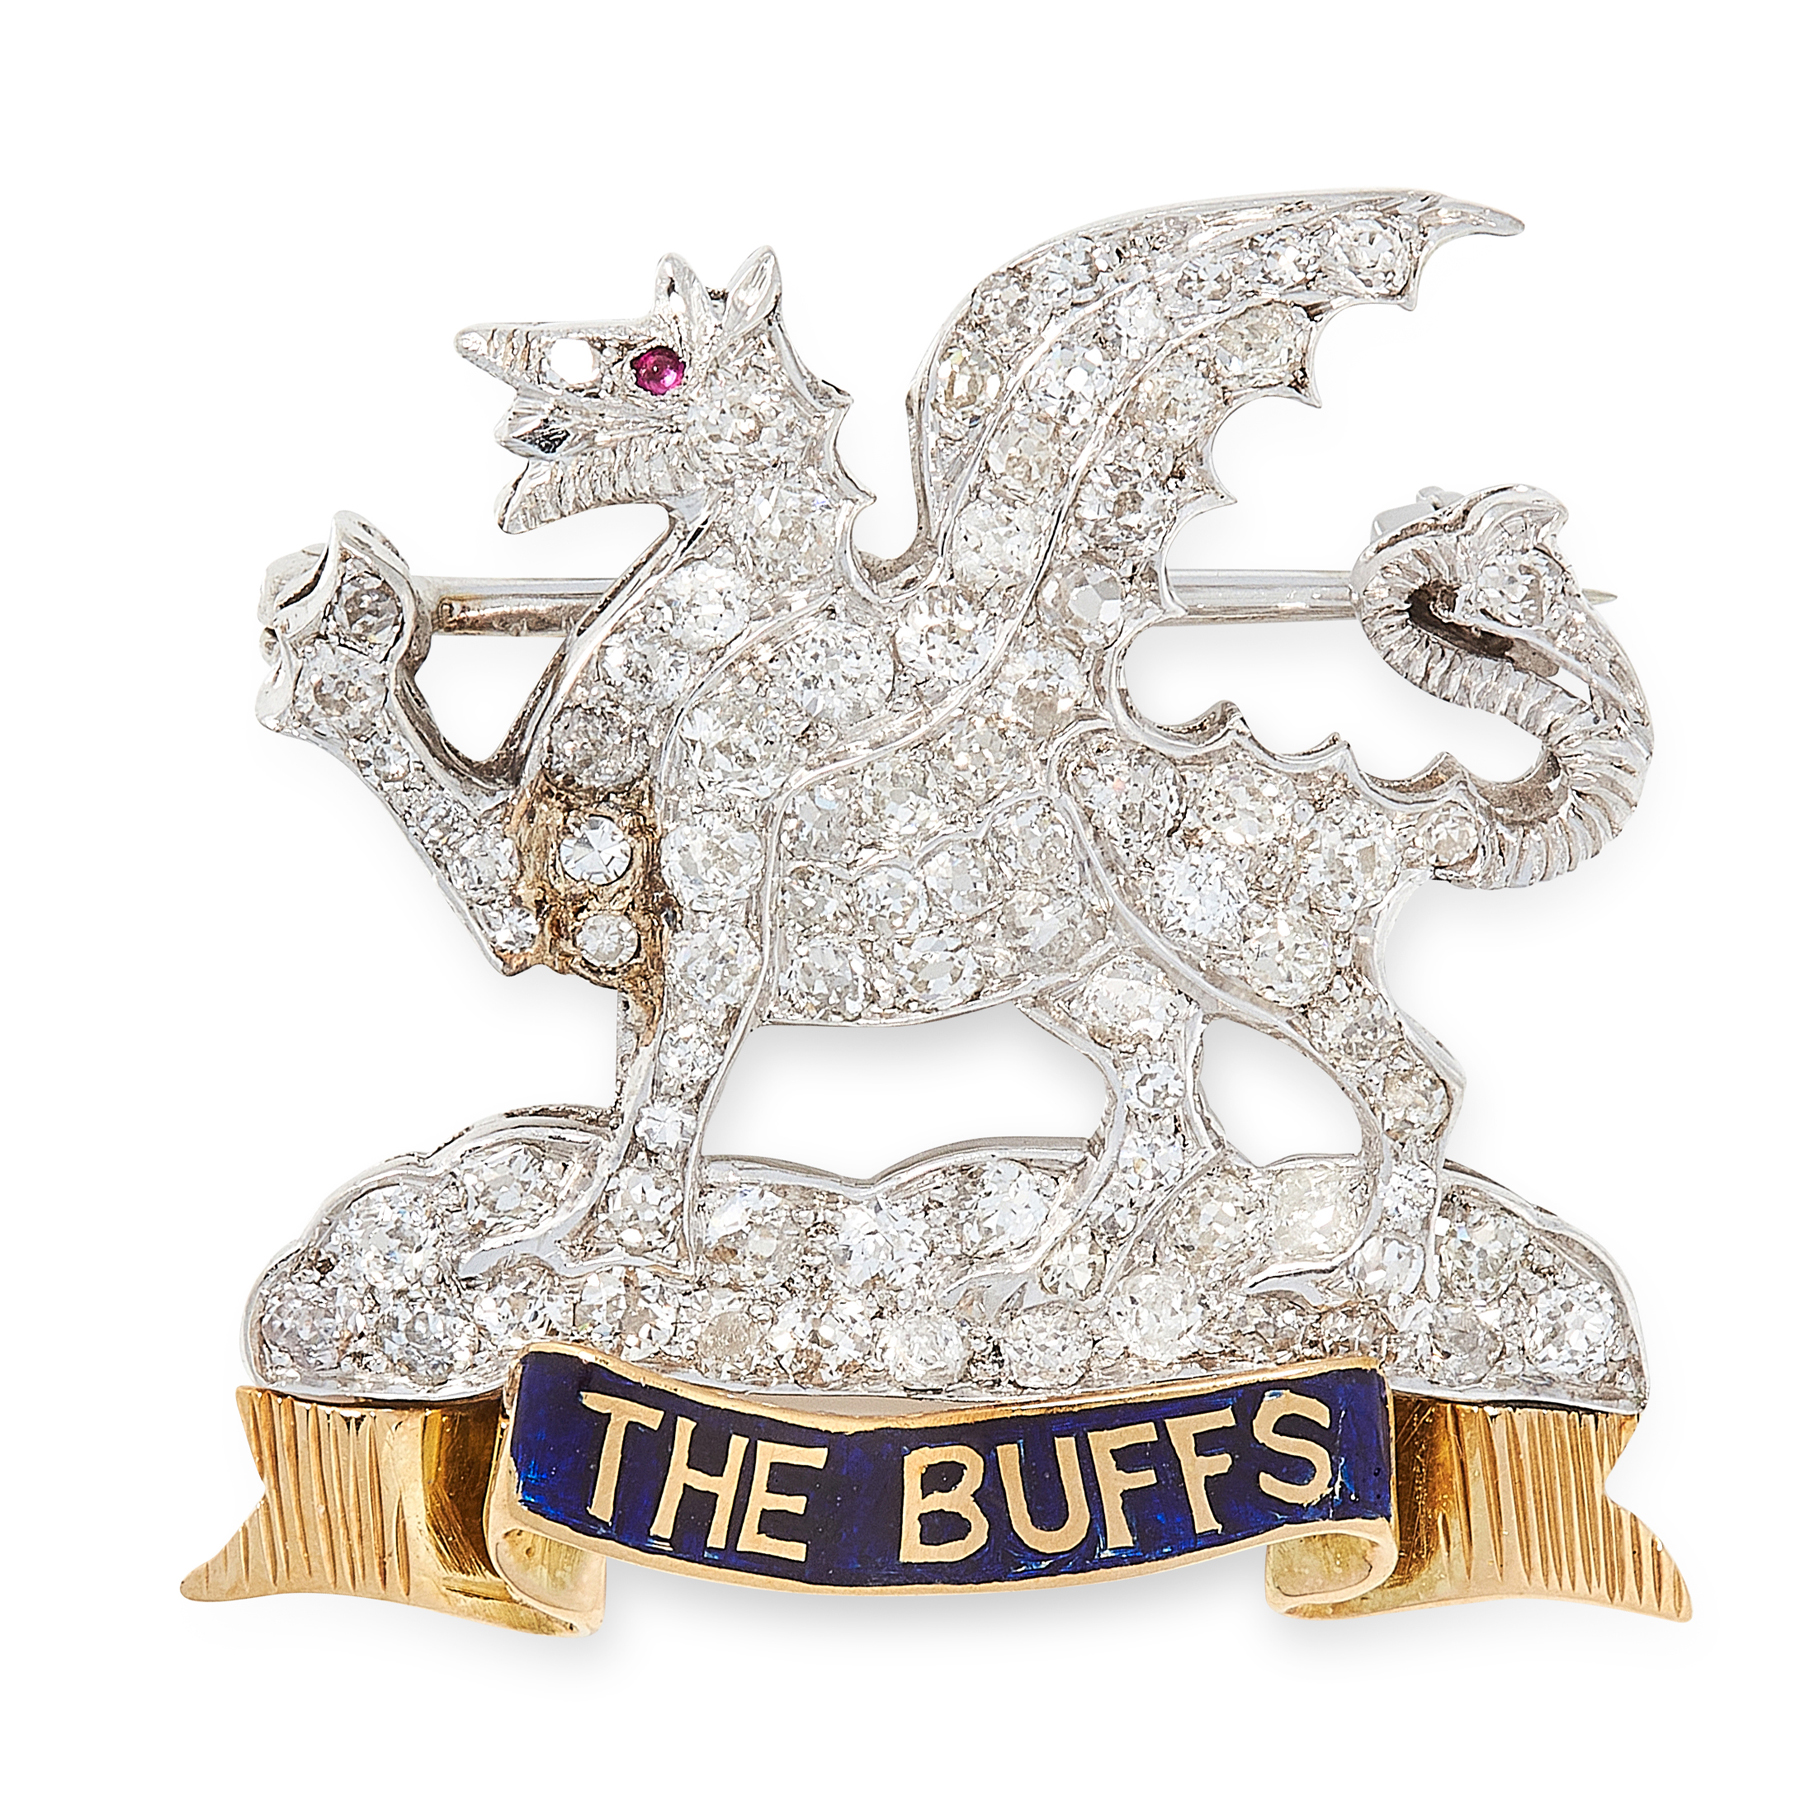 A REGIMENTAL DIAMOND, RUBY AND ENAMEL BROOCH / PIN BADGE in yellow and white gold, for The Buffs,